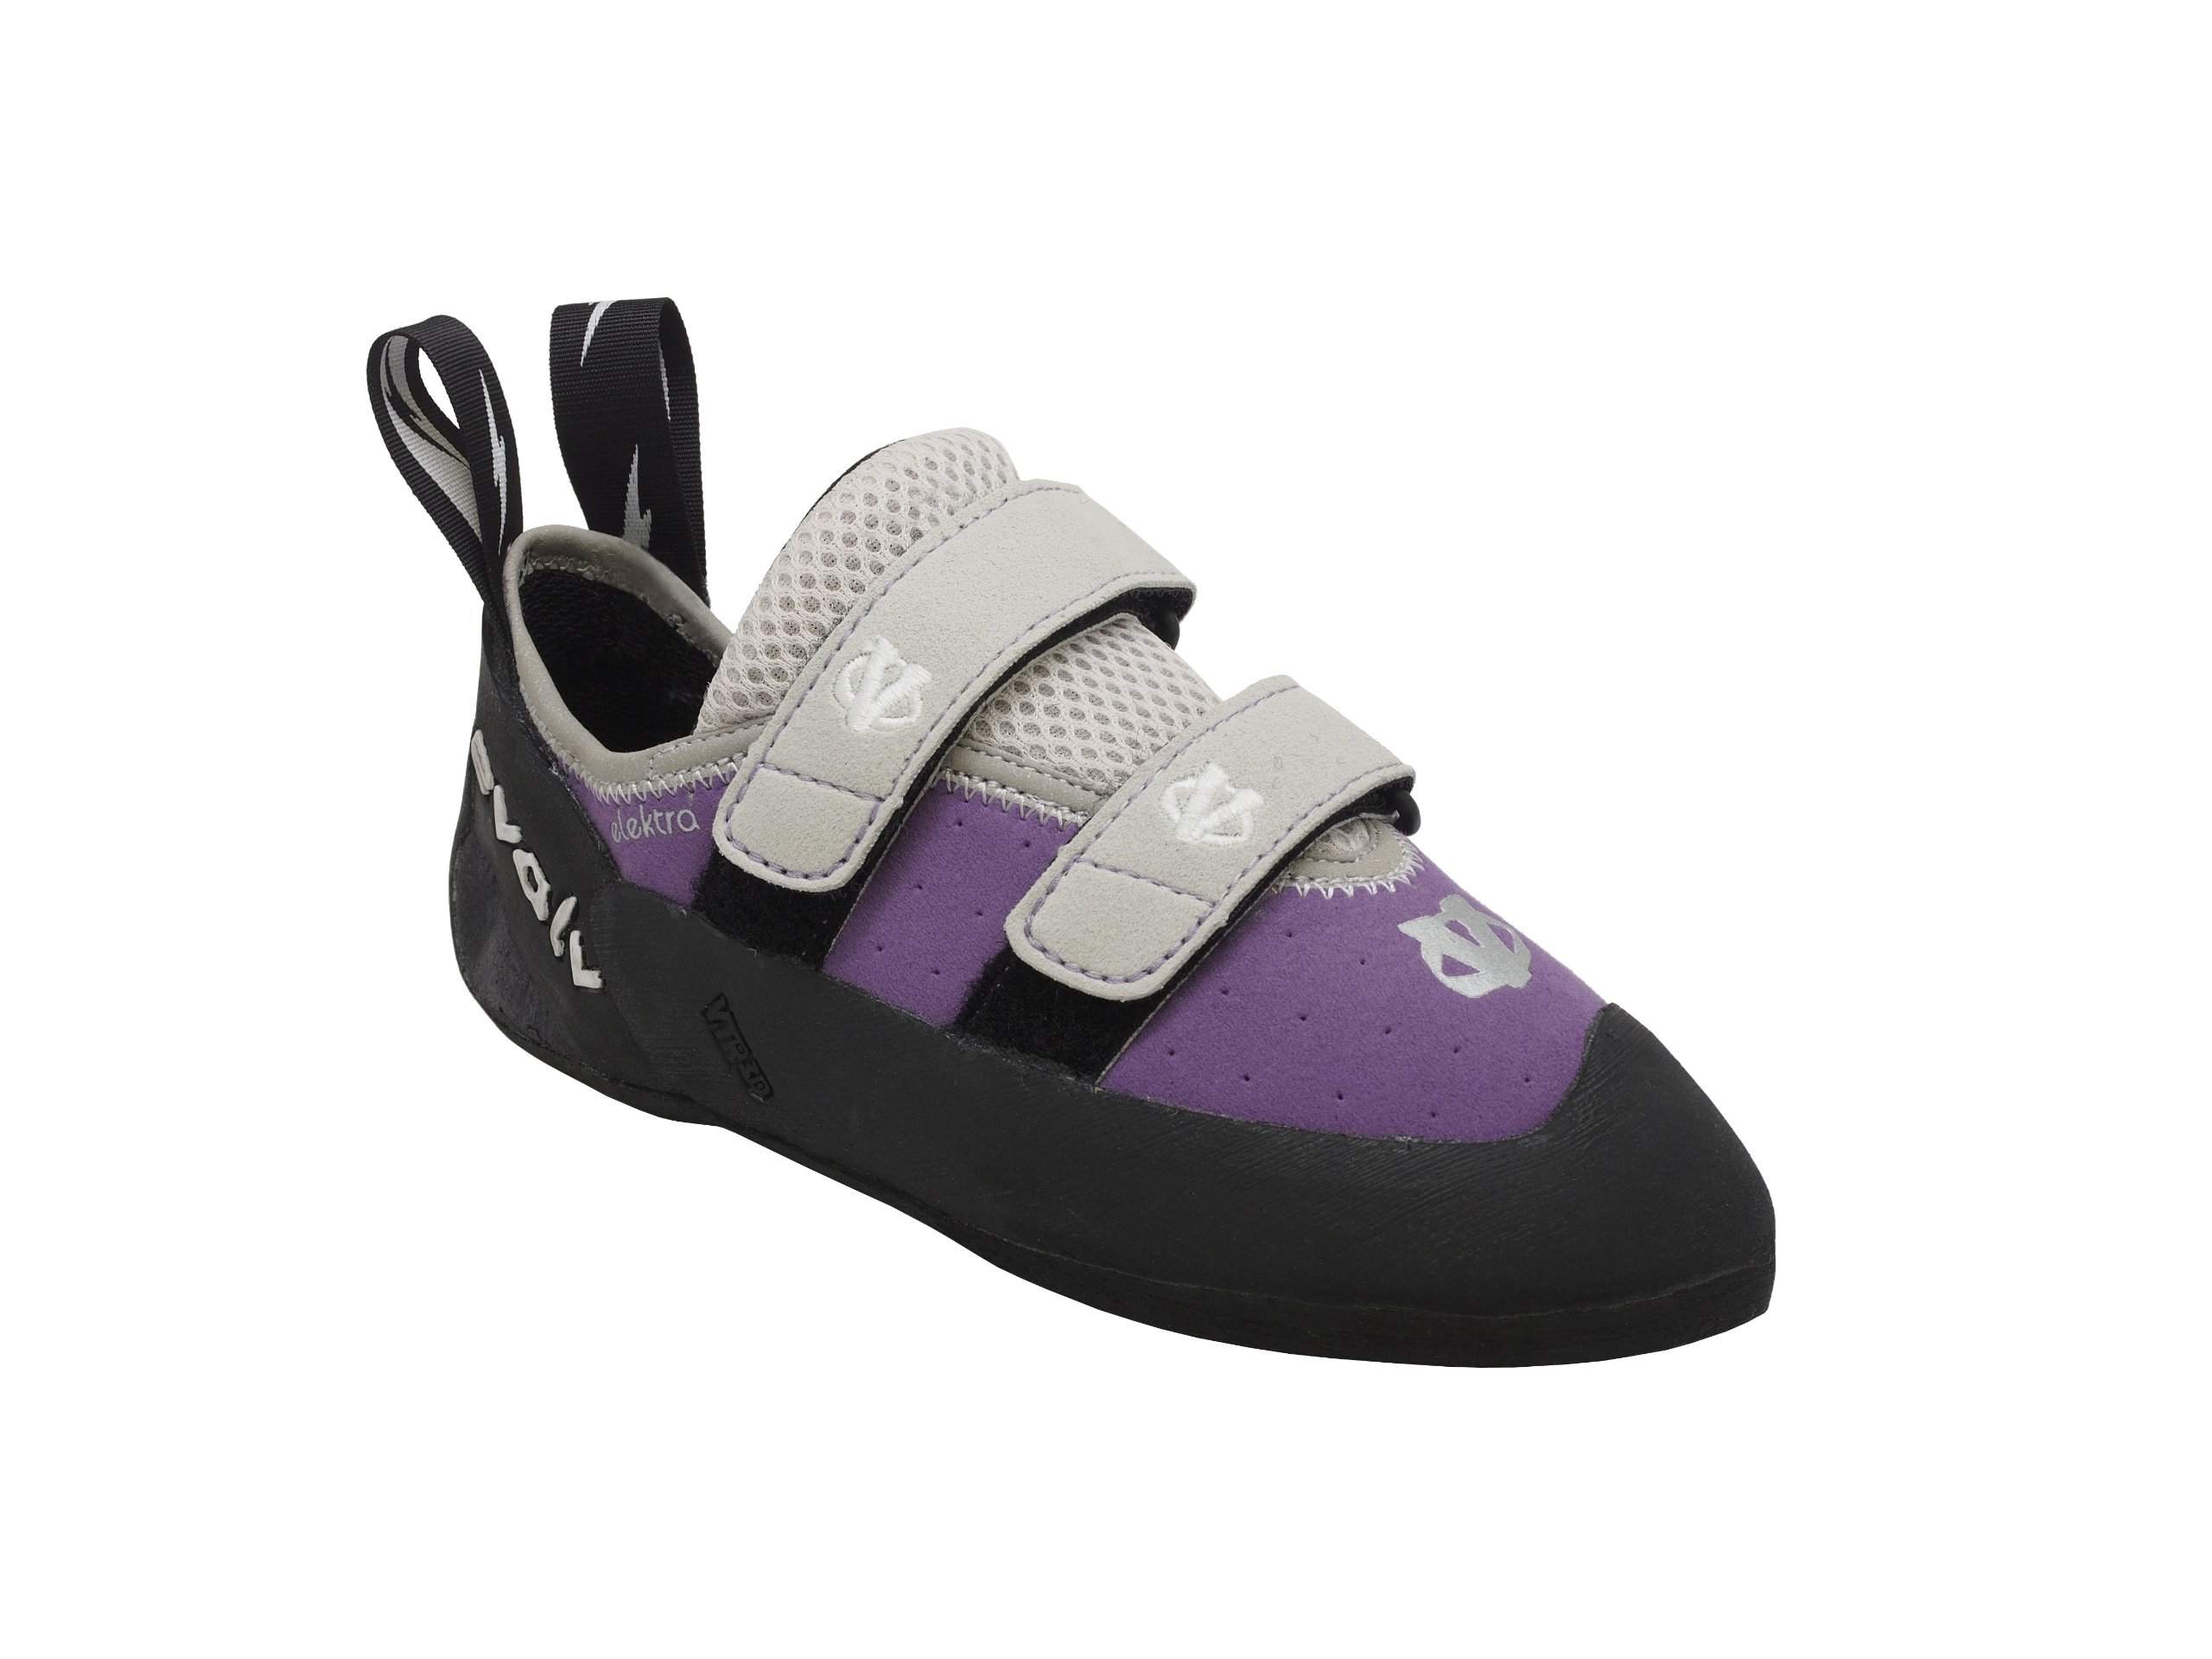 Evolv Elektra Climbing Shoe (2014) - Women's Violet 4 by Evolv